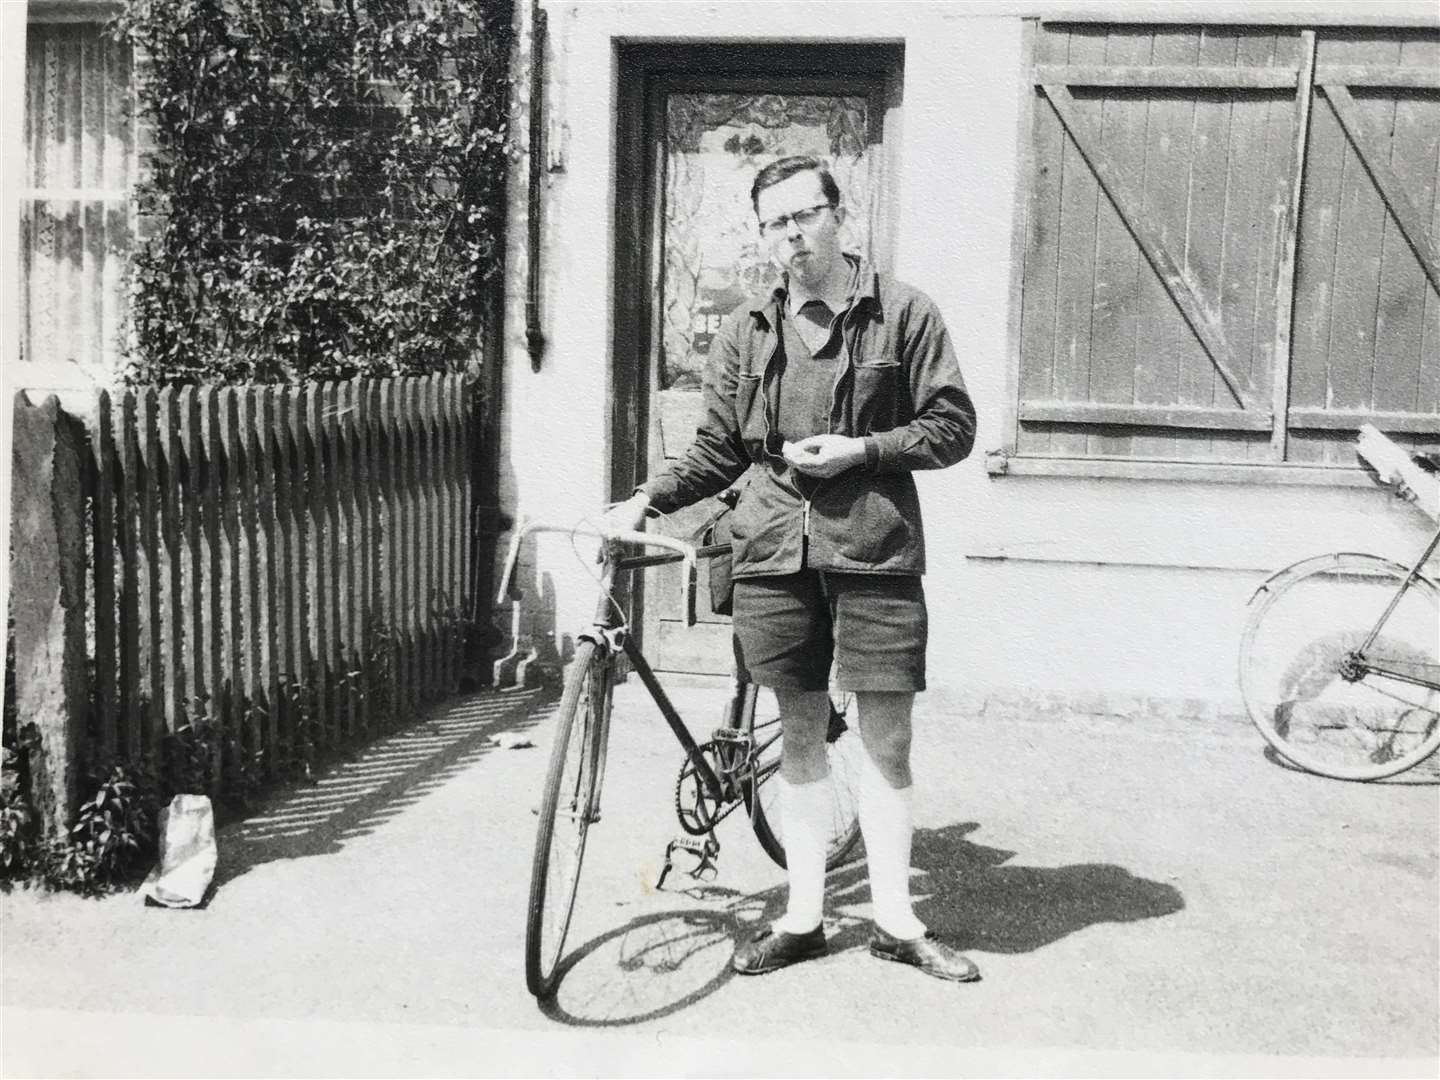 Peter Newman was a keen cyclist in the 1950s